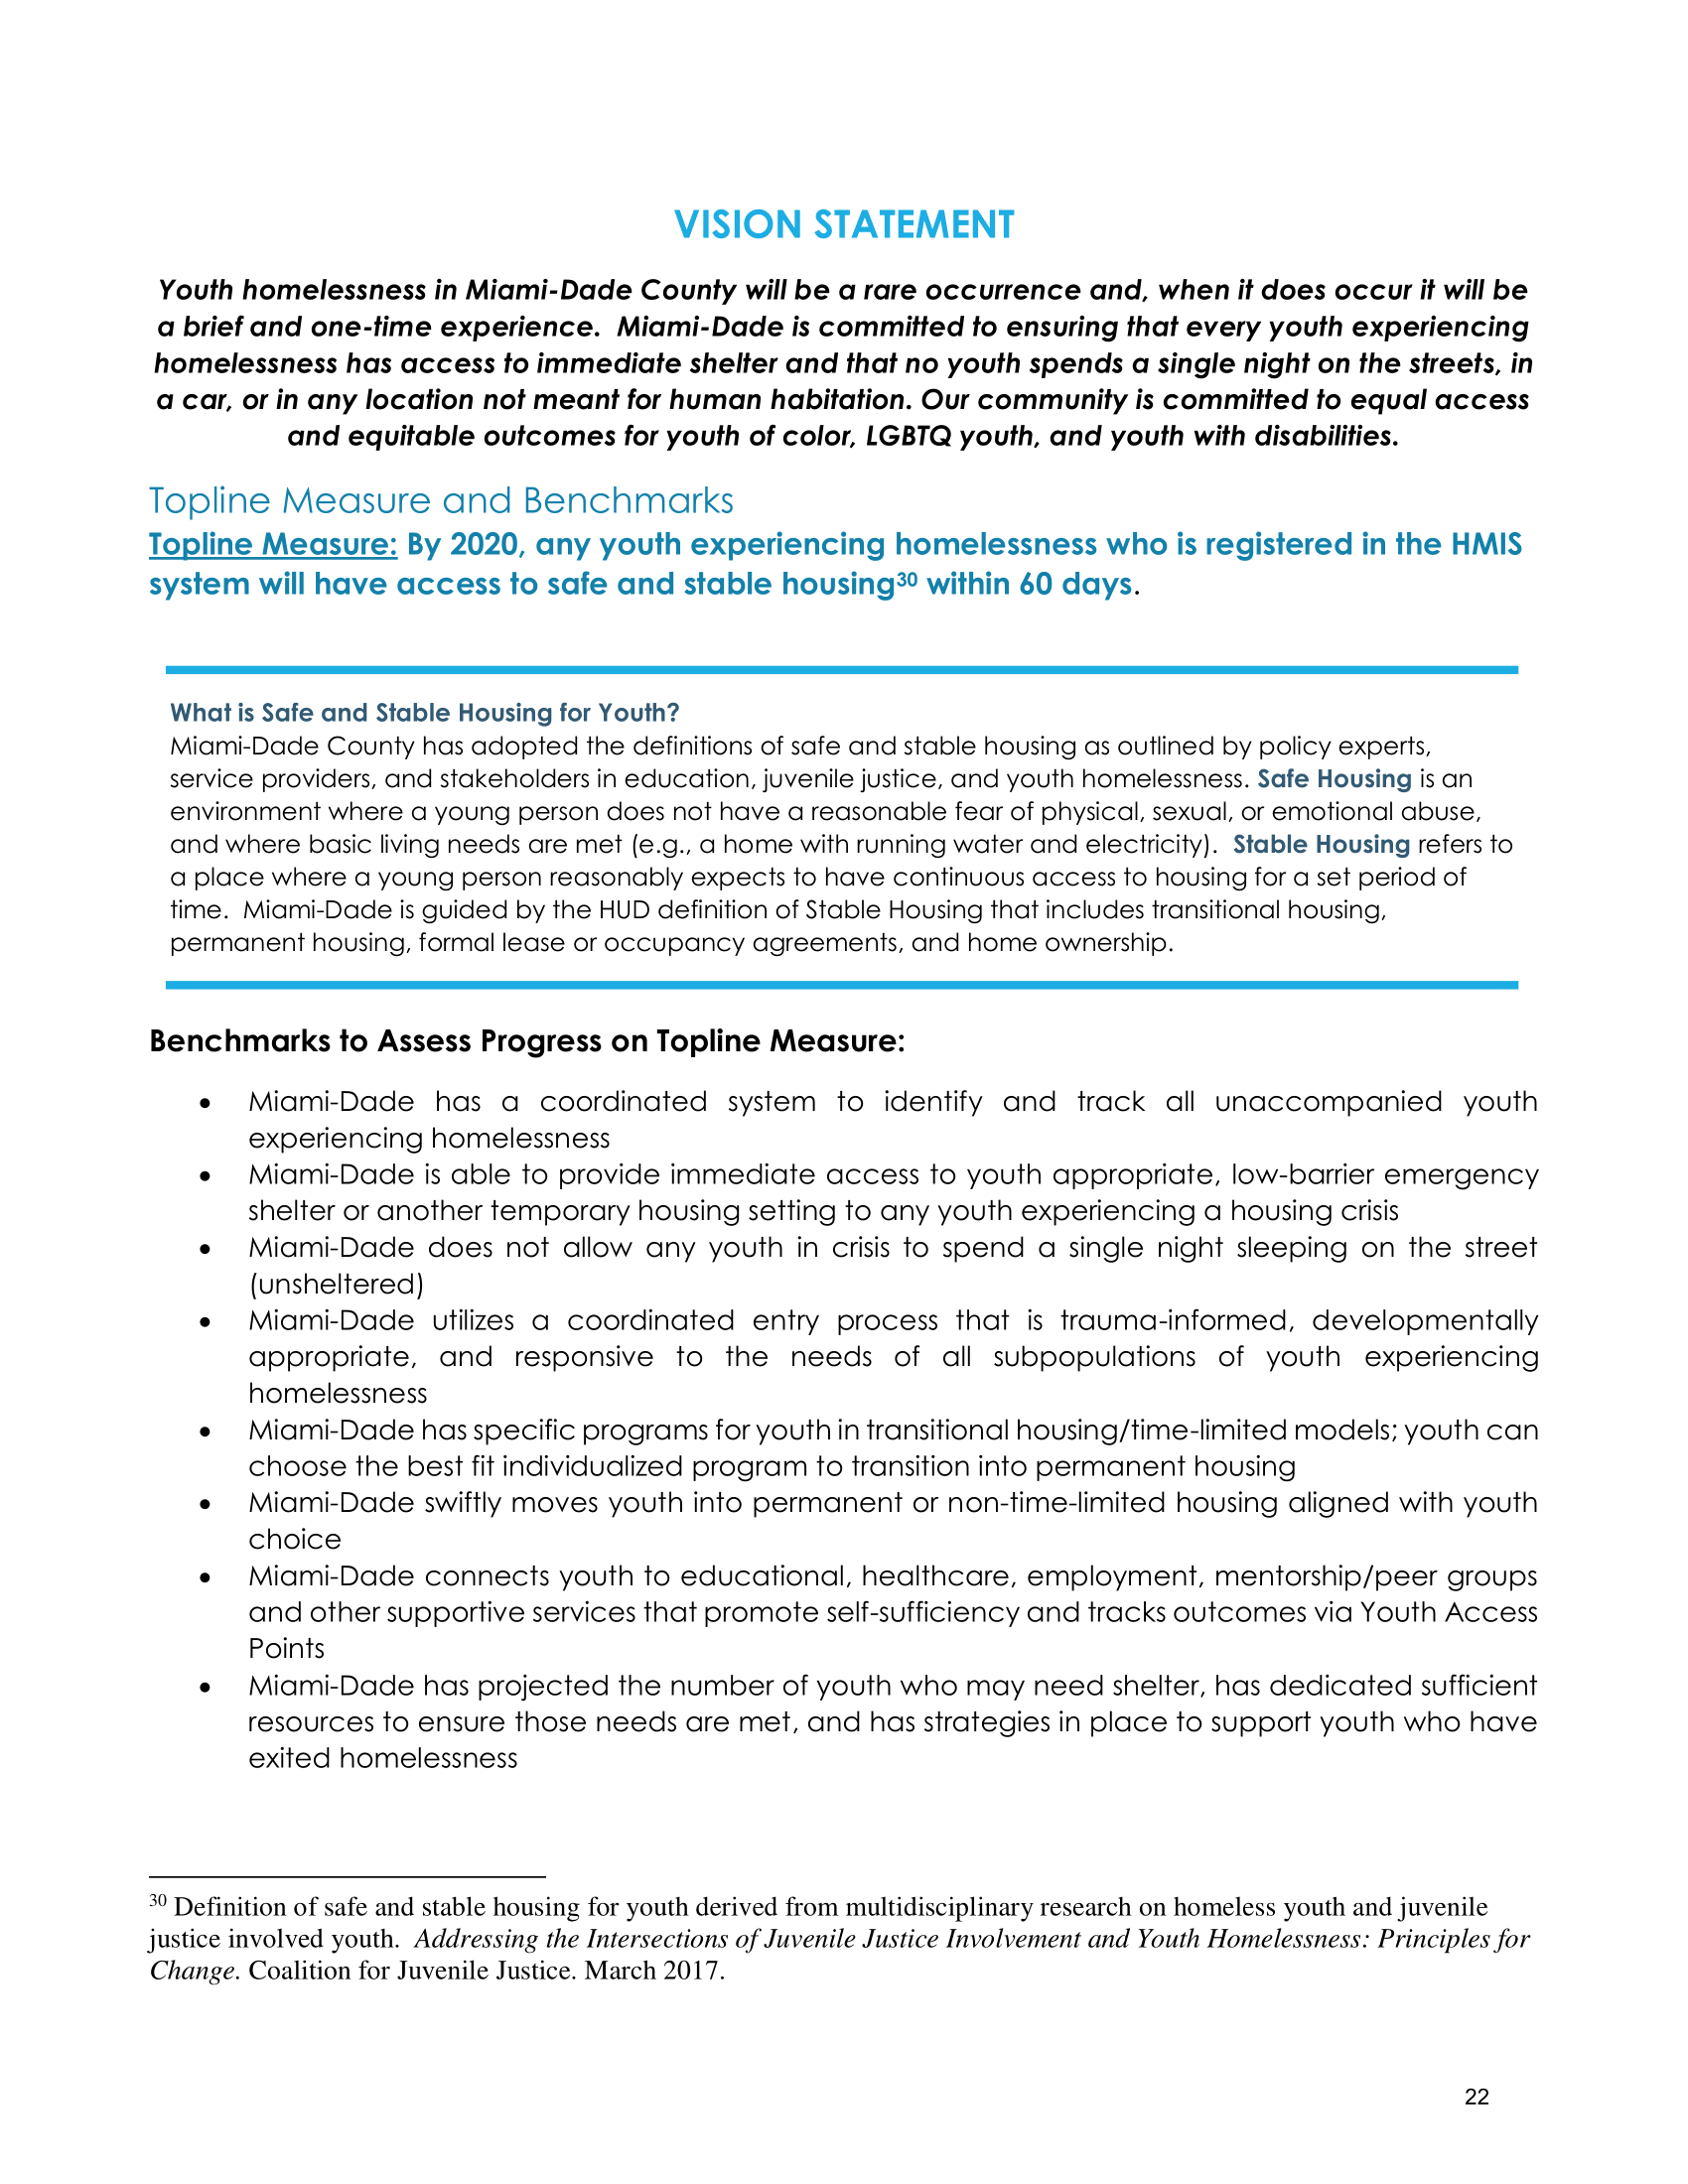 Comprehensive Plan to End and Prevent Homelessness in Miami-Dade County - December 2017-27.png